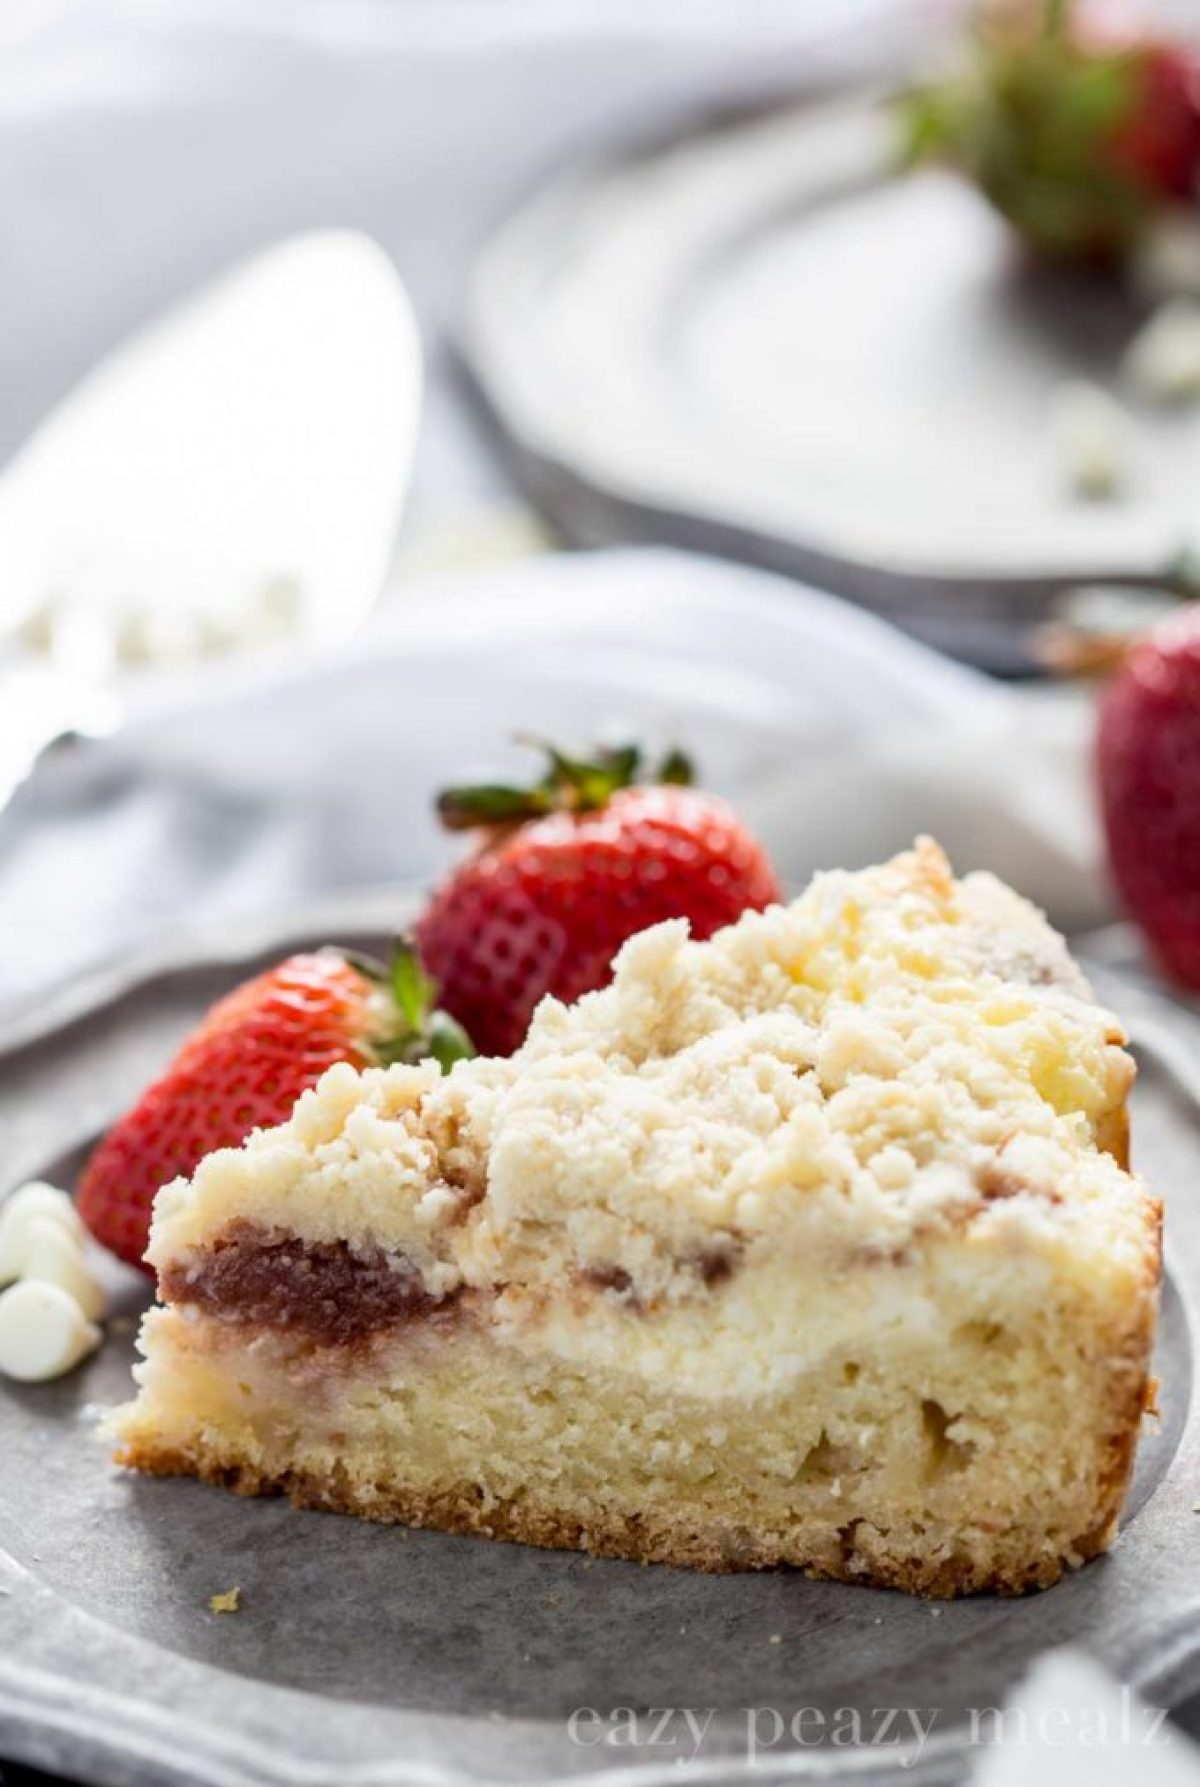 Coffee cake for breakfast, it's so delicious, this has white chocolate and strawberries.